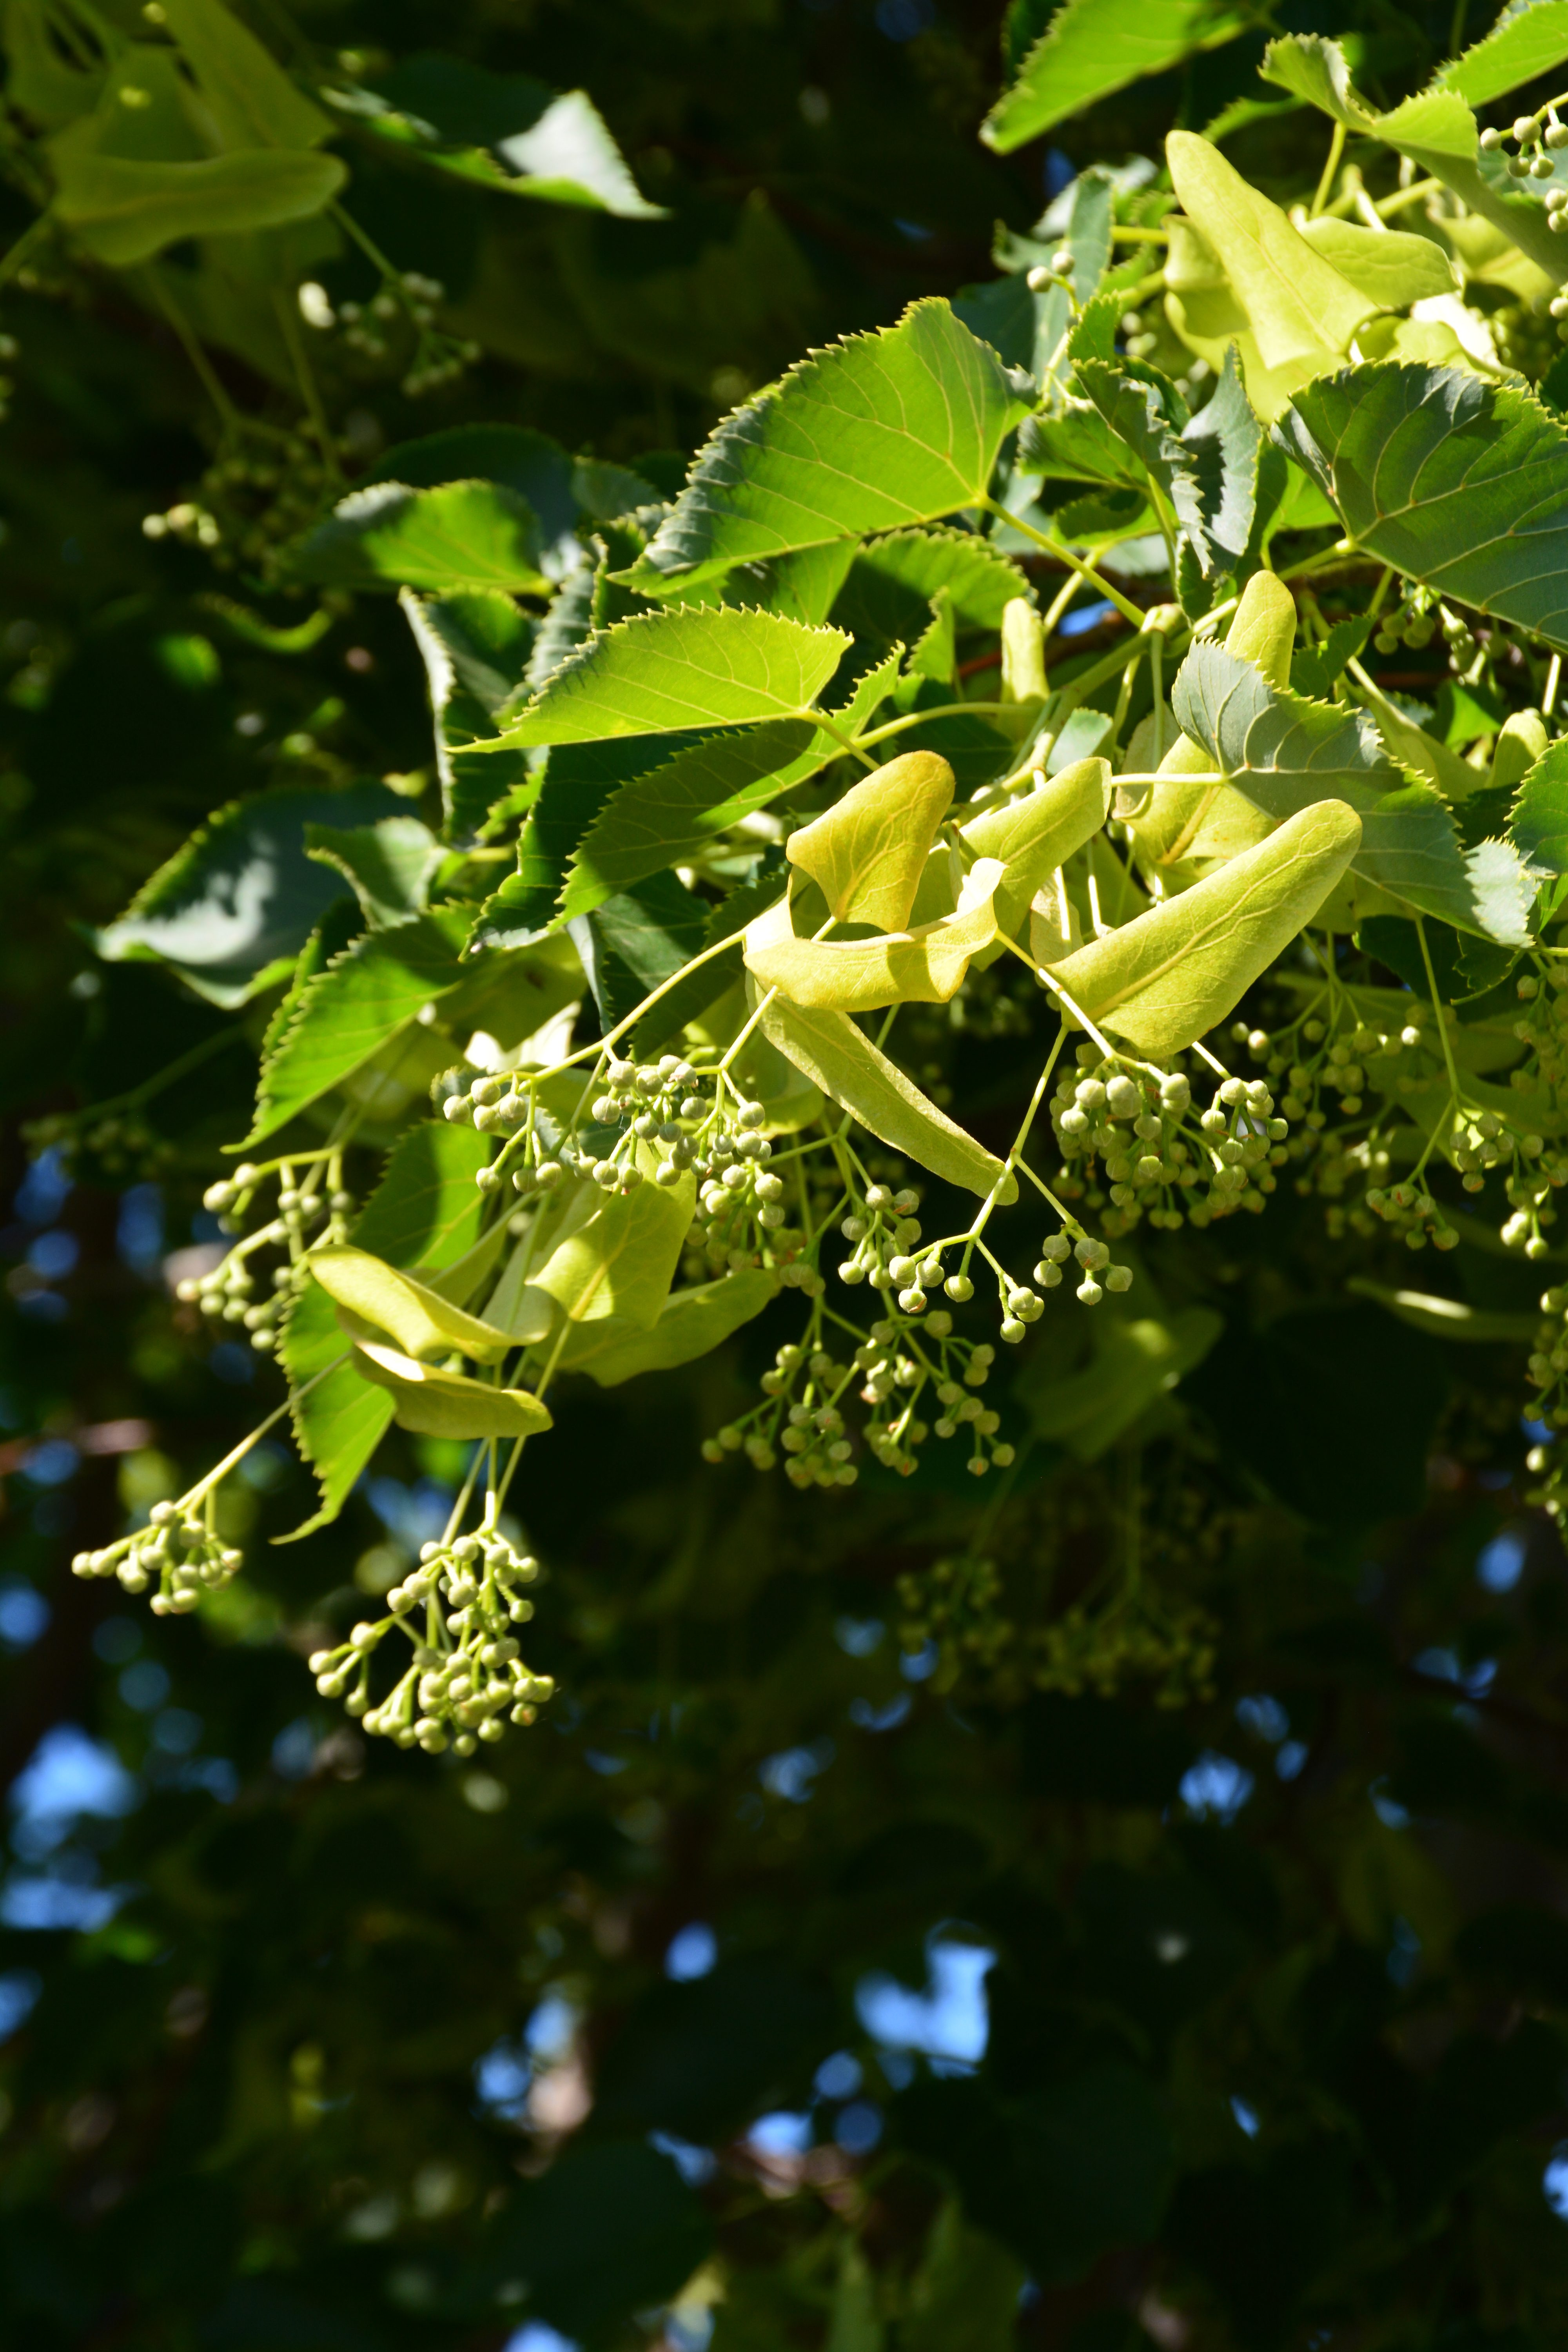 Dropmore Linden Flower Close Up